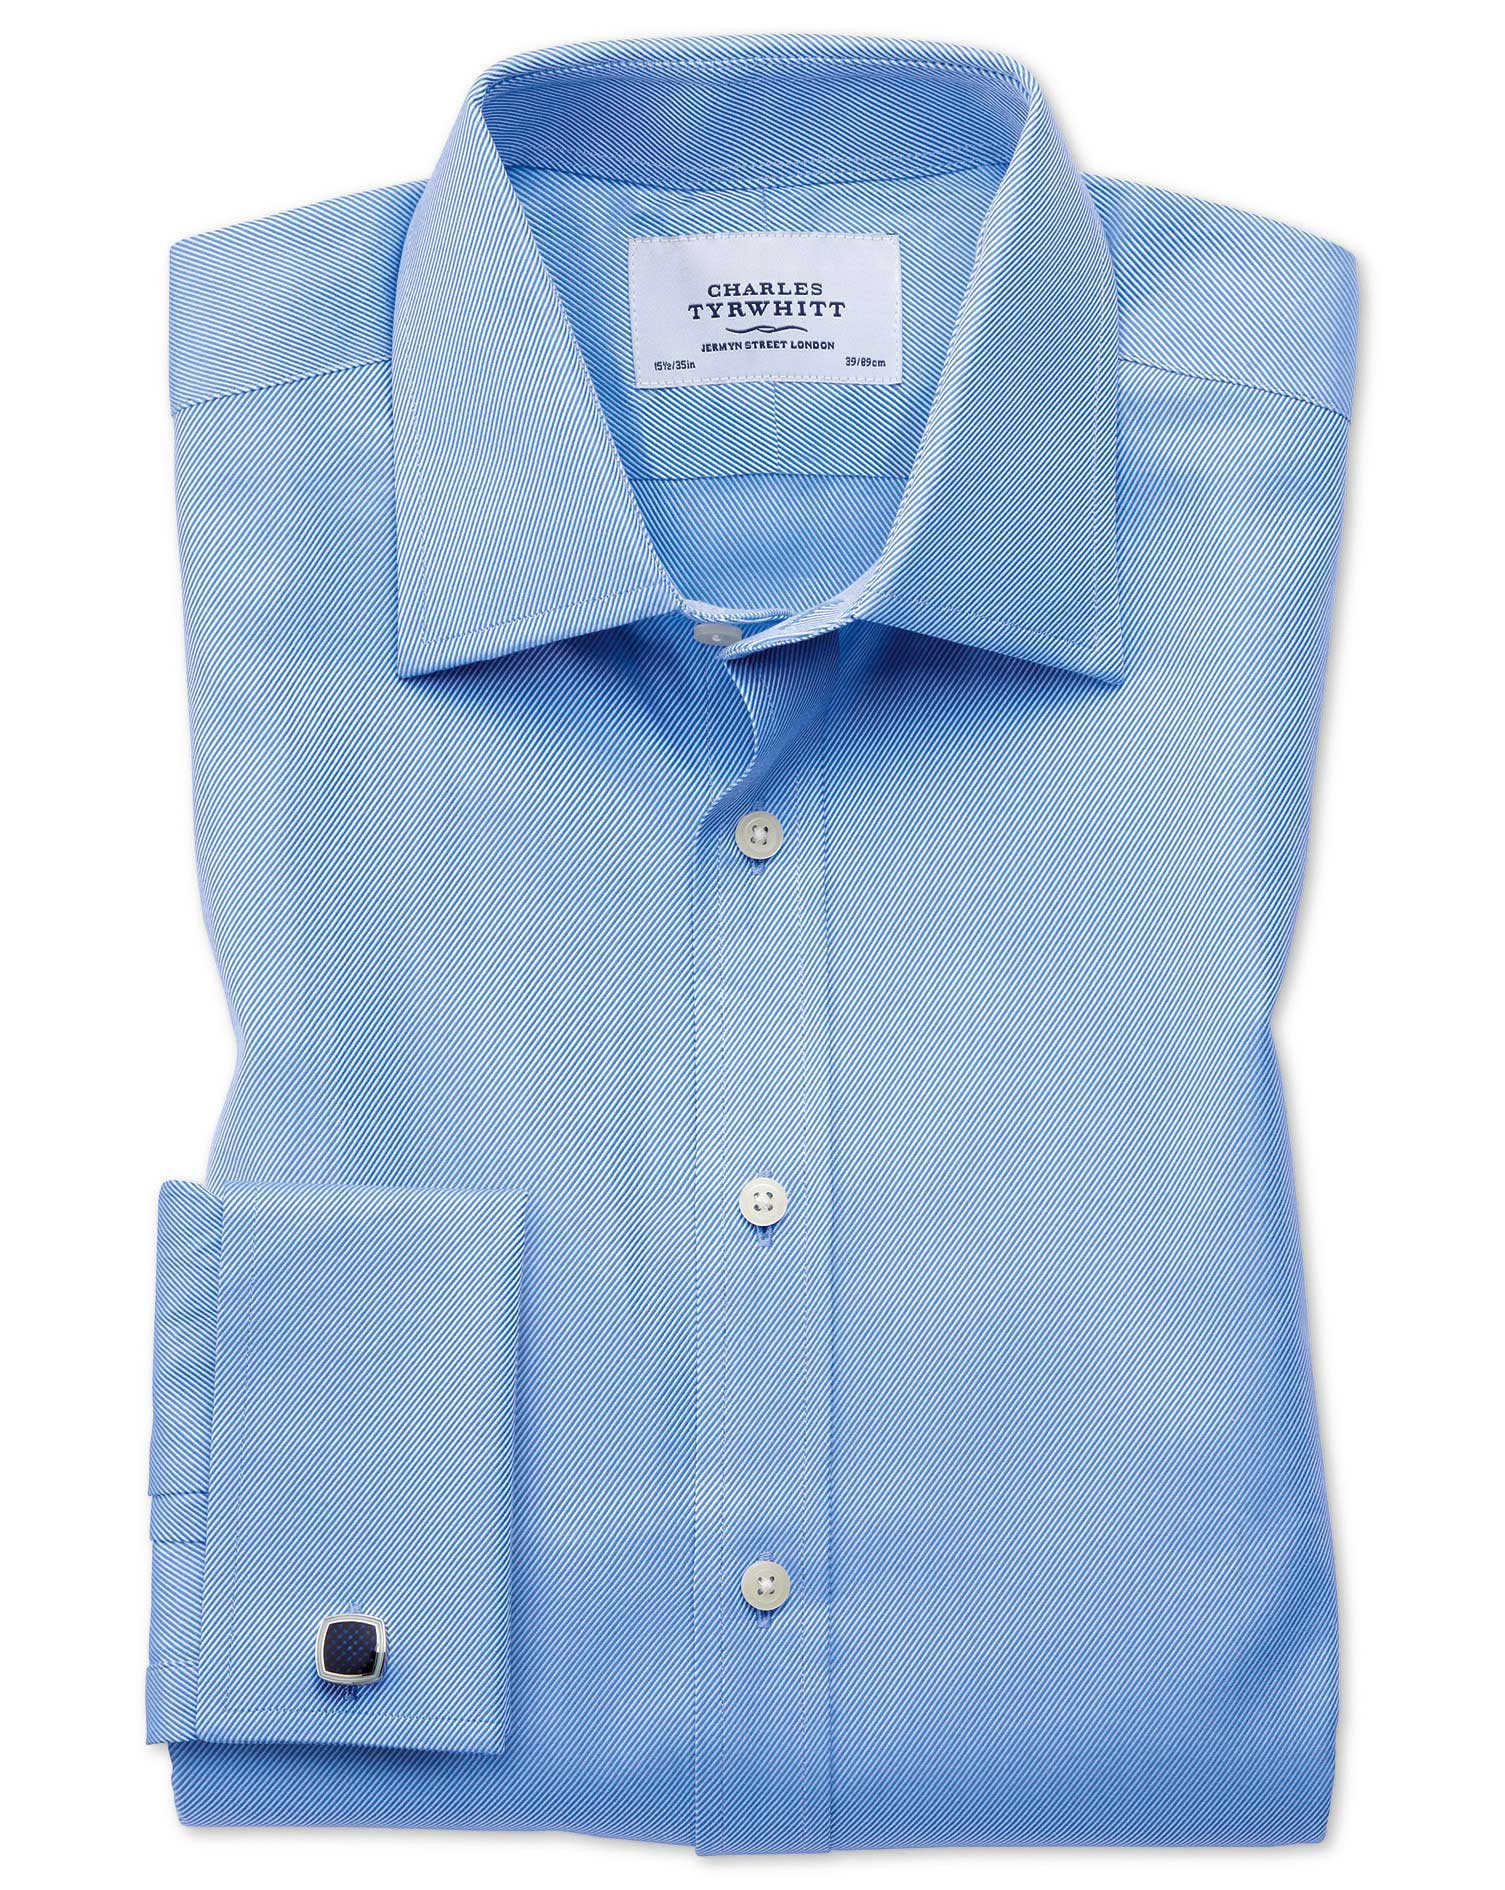 Classic Fit Egyptian Cotton Cavalry Twill Blue Formal Shirt Double Cuff Size 16.5/34 by Charles Tyrw